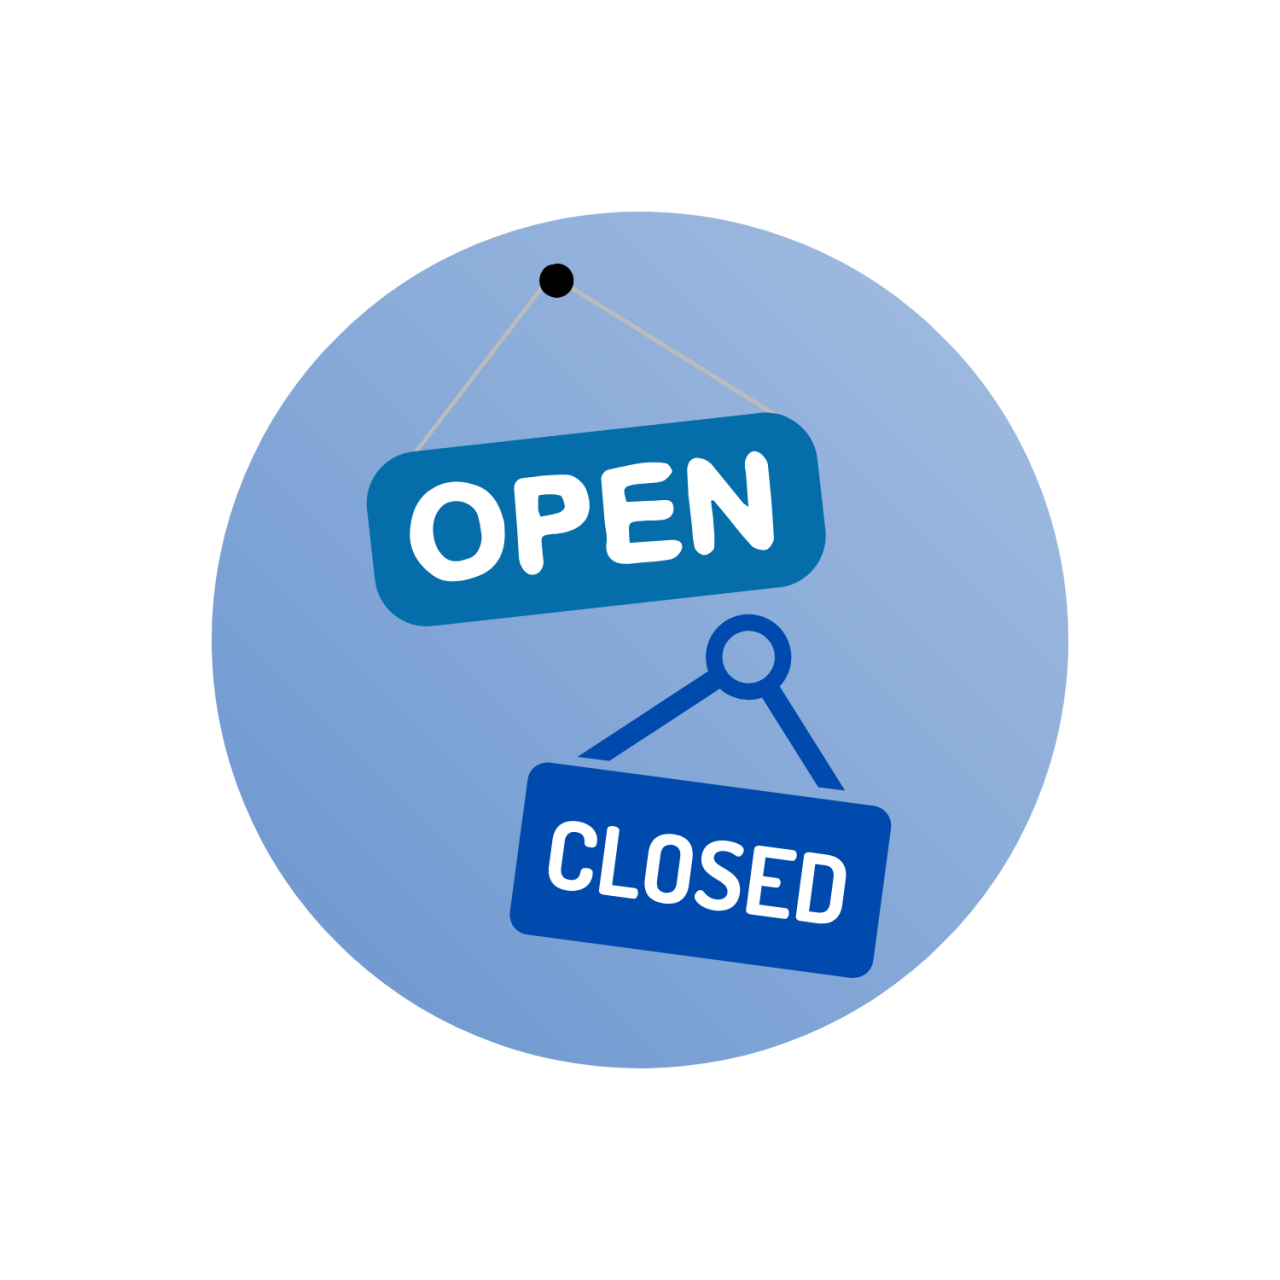 50-500154_open-closed-outdoor-open-closed-led-sign_png